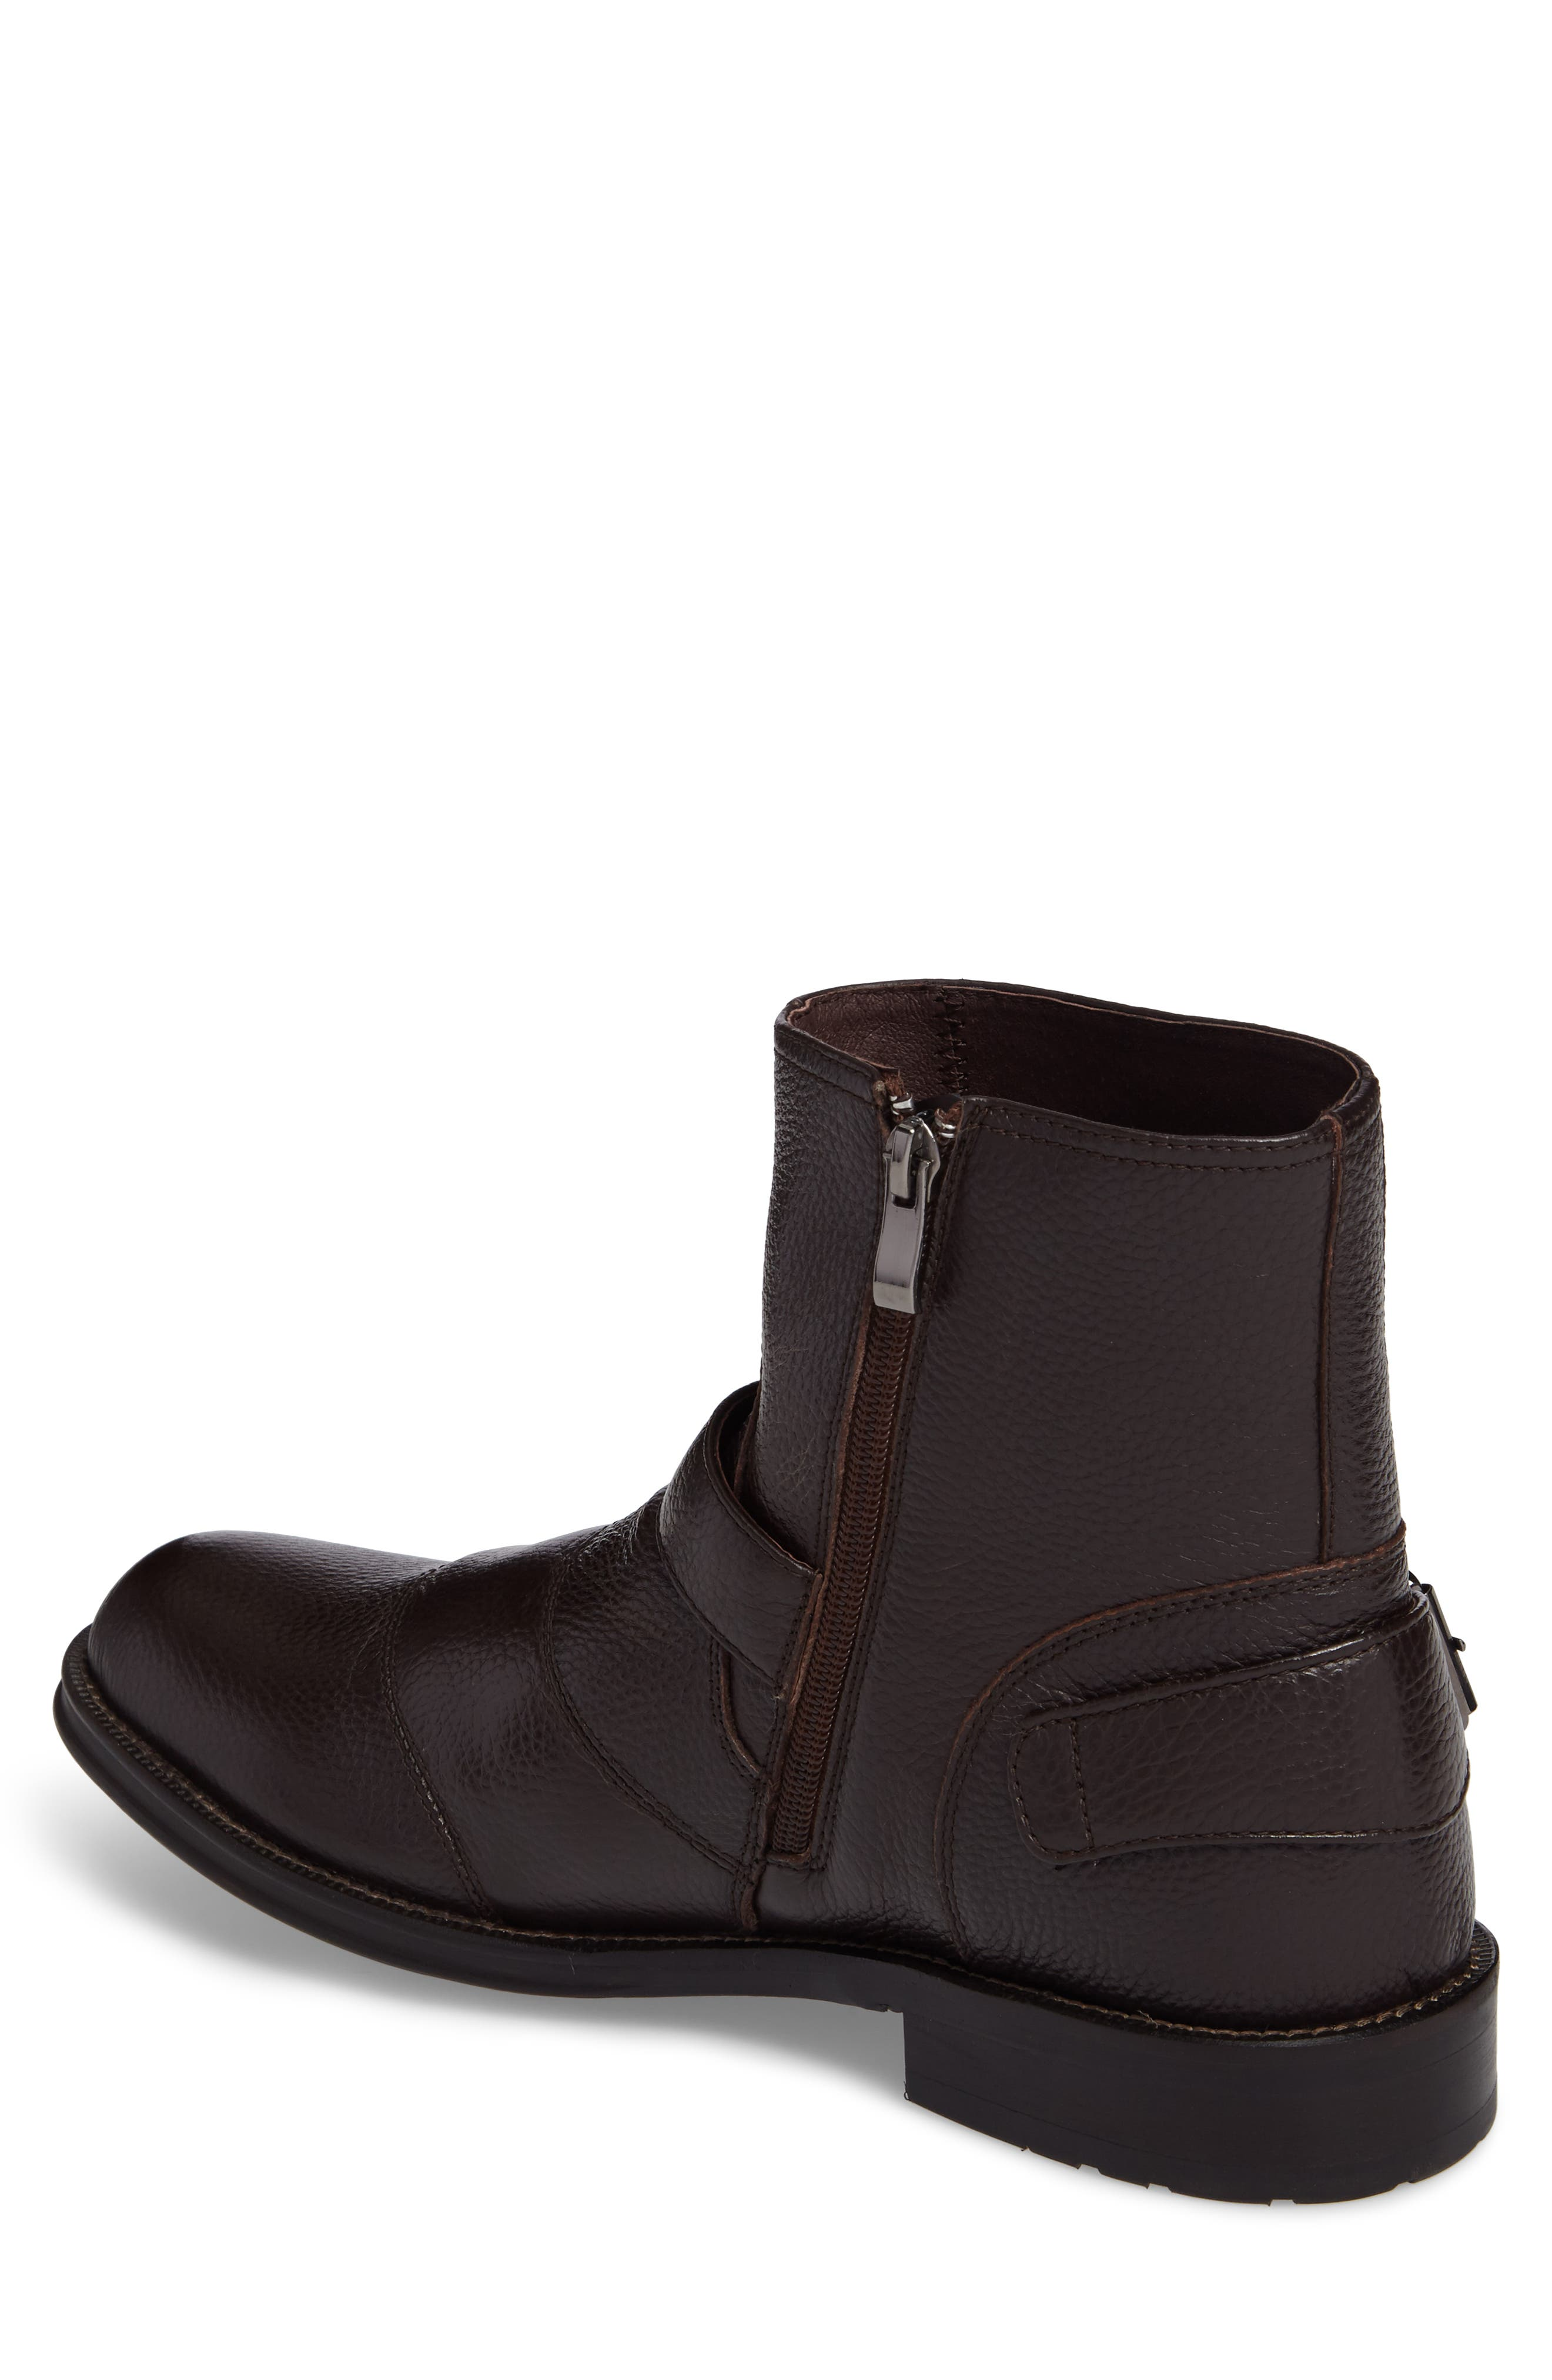 Howson Buckle Strap Boot,                             Alternate thumbnail 2, color,                             BROWN LEATHER